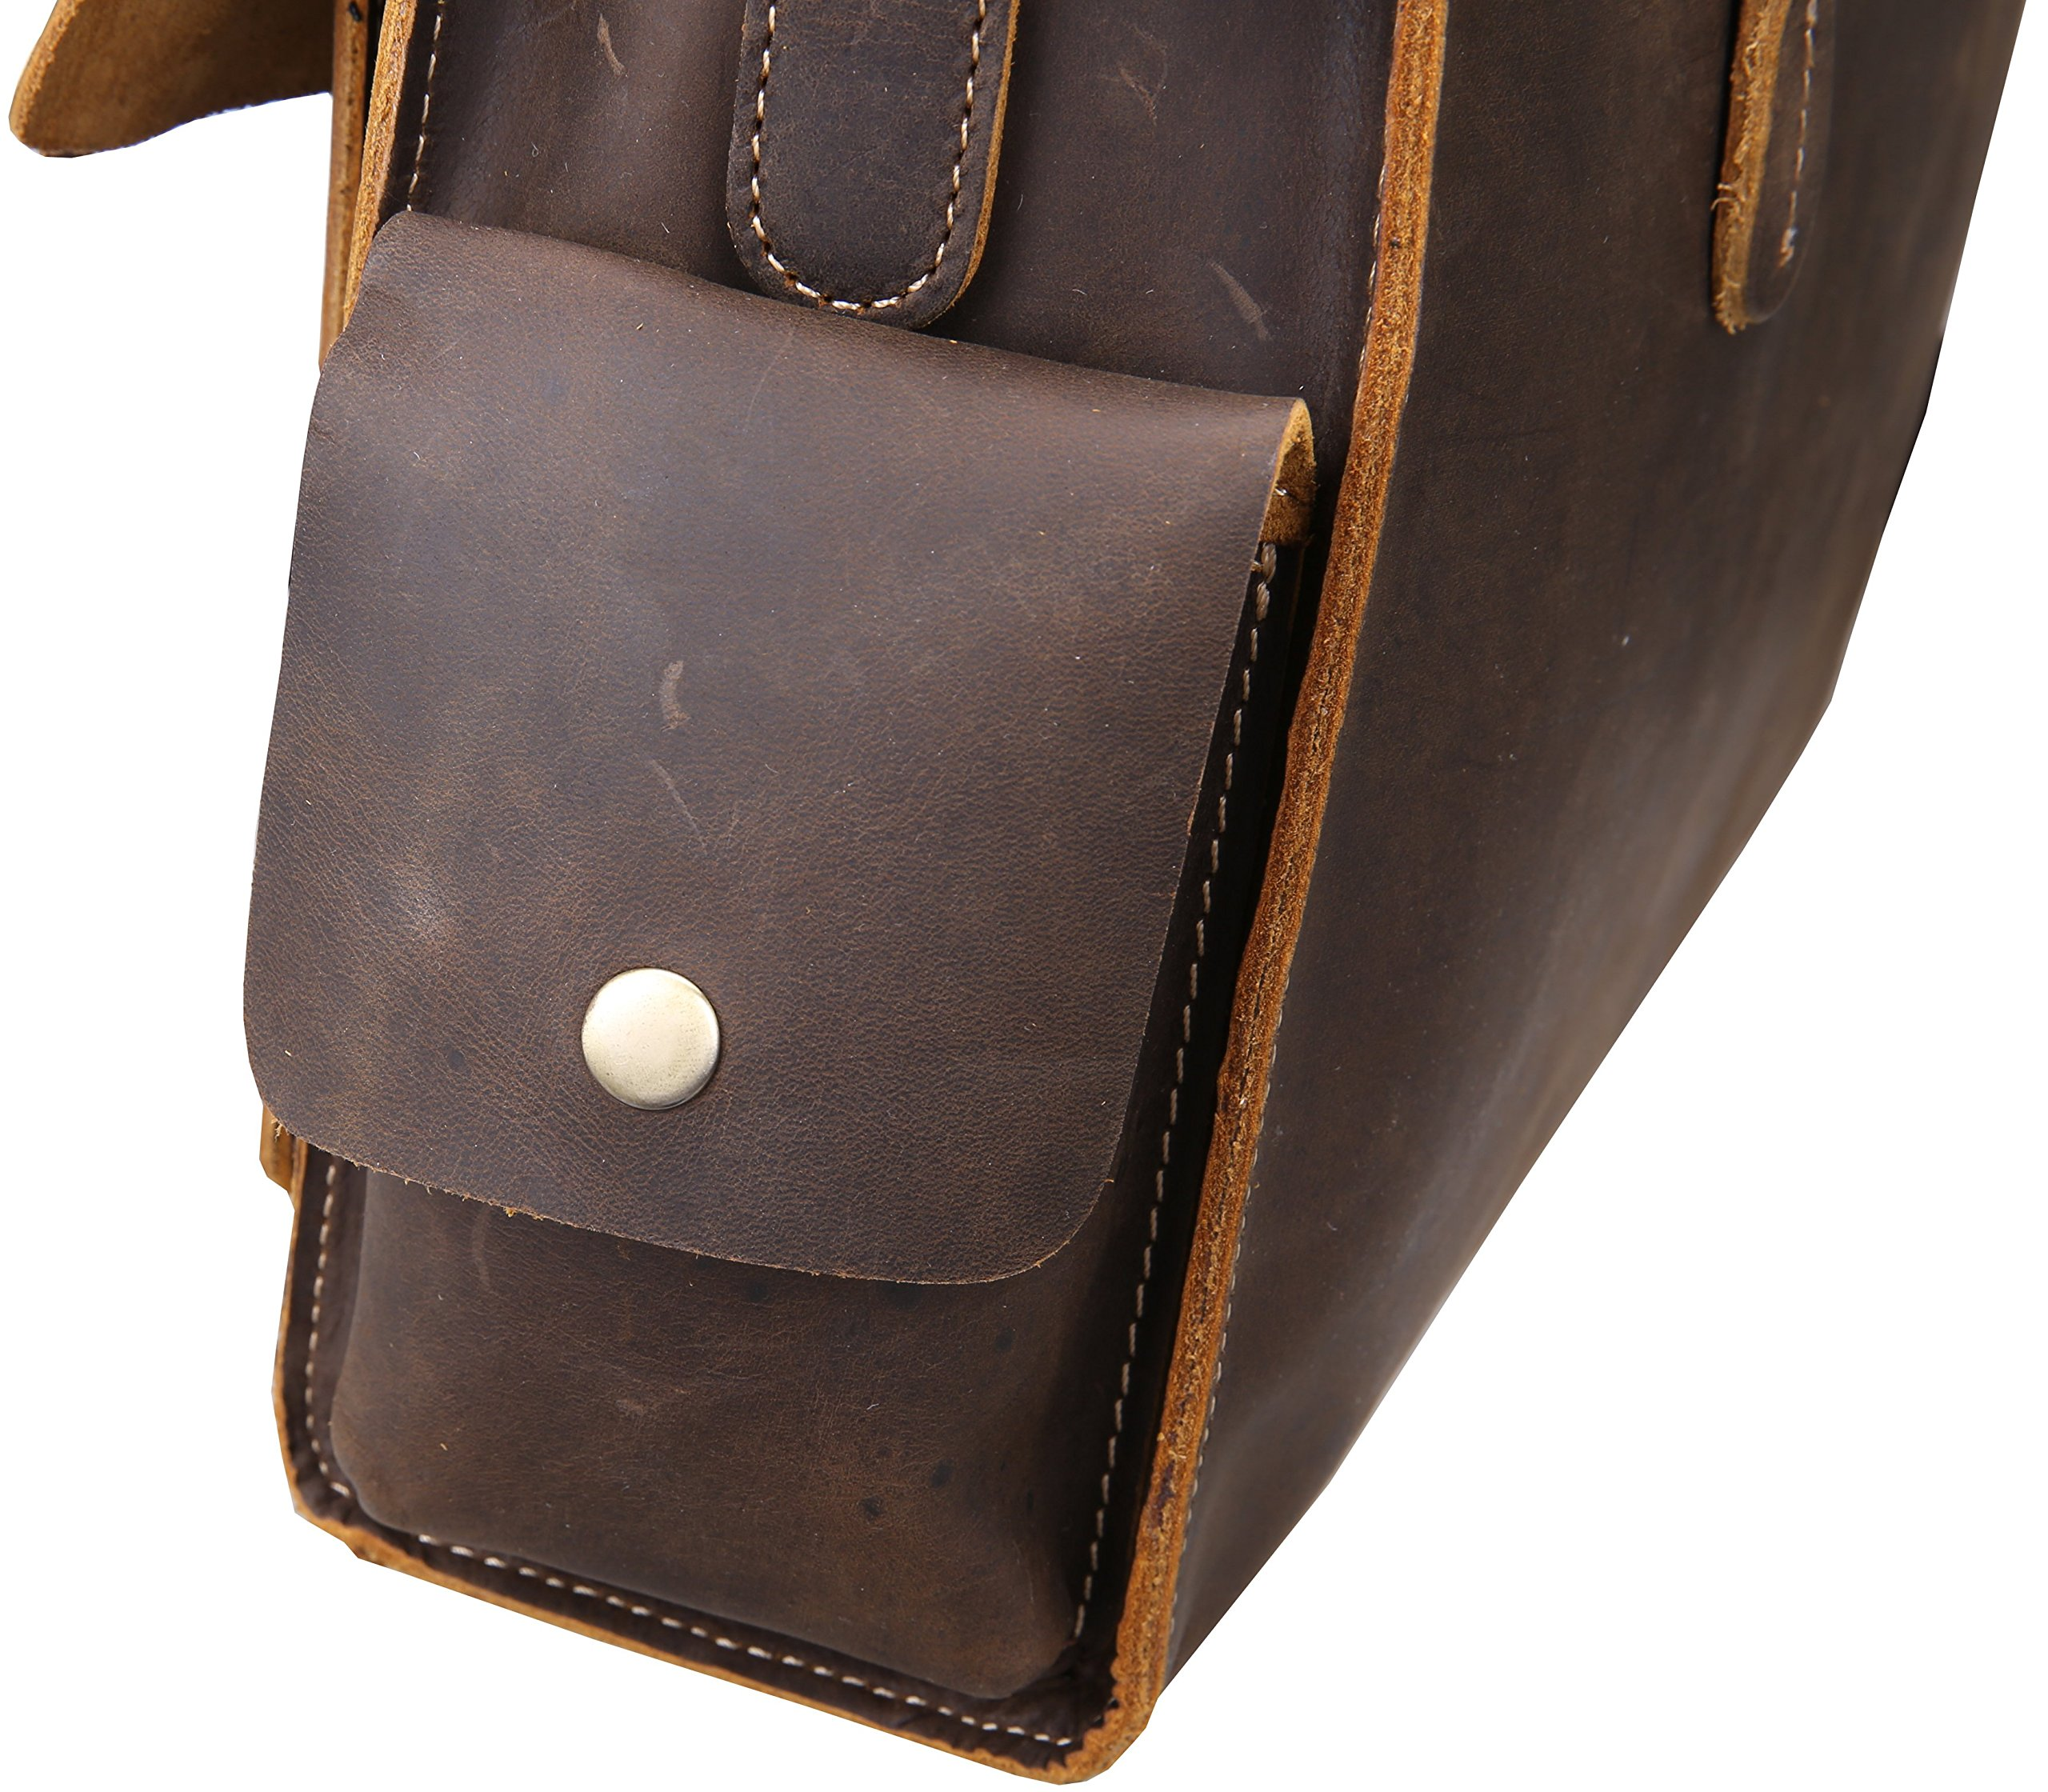 Iswee Vintage Leather Messenger Bag 13.3'' Laptop Briefcase Shoulder Bag for Men by Iswee (Image #5)